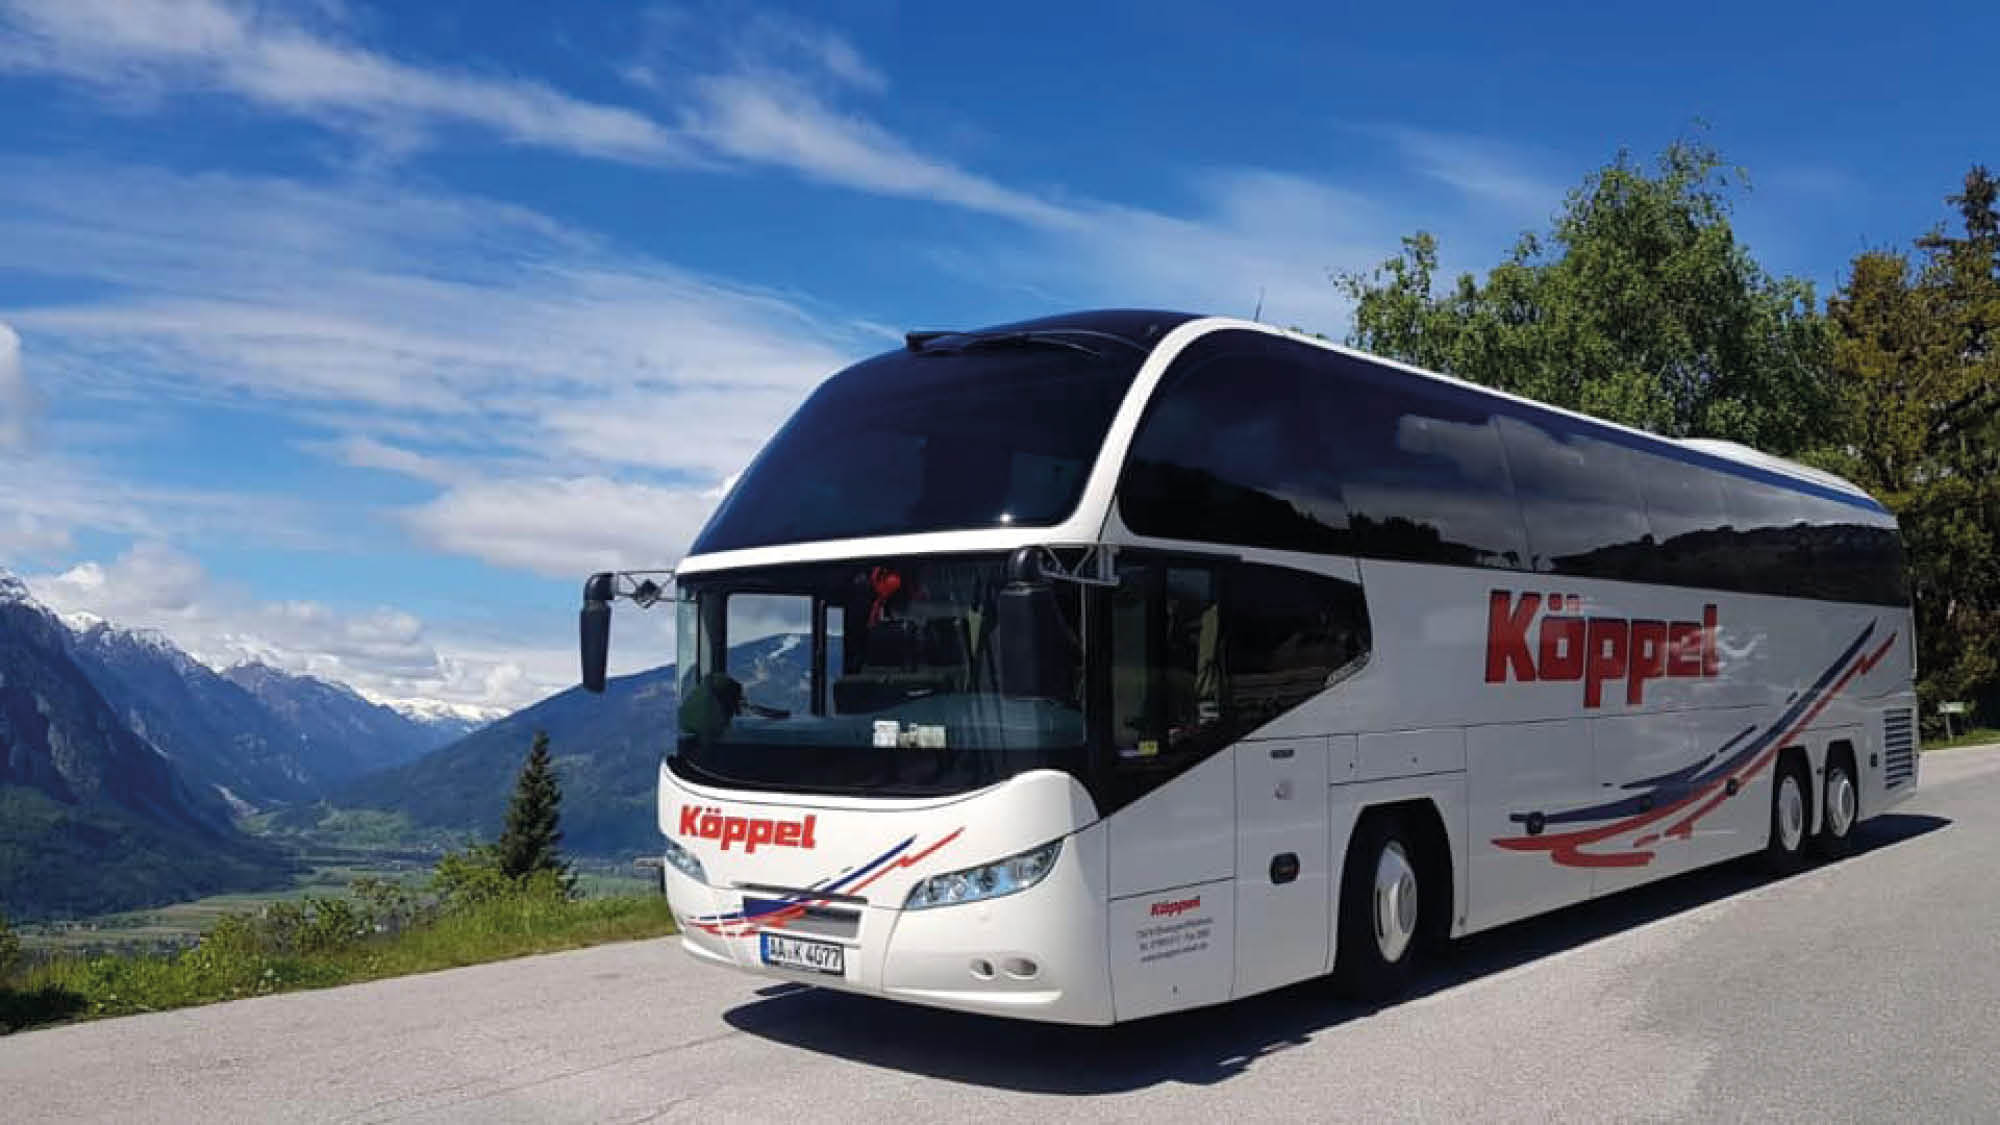 Köppel - Ellwangen - Website - Bus - 2019-12 - 03